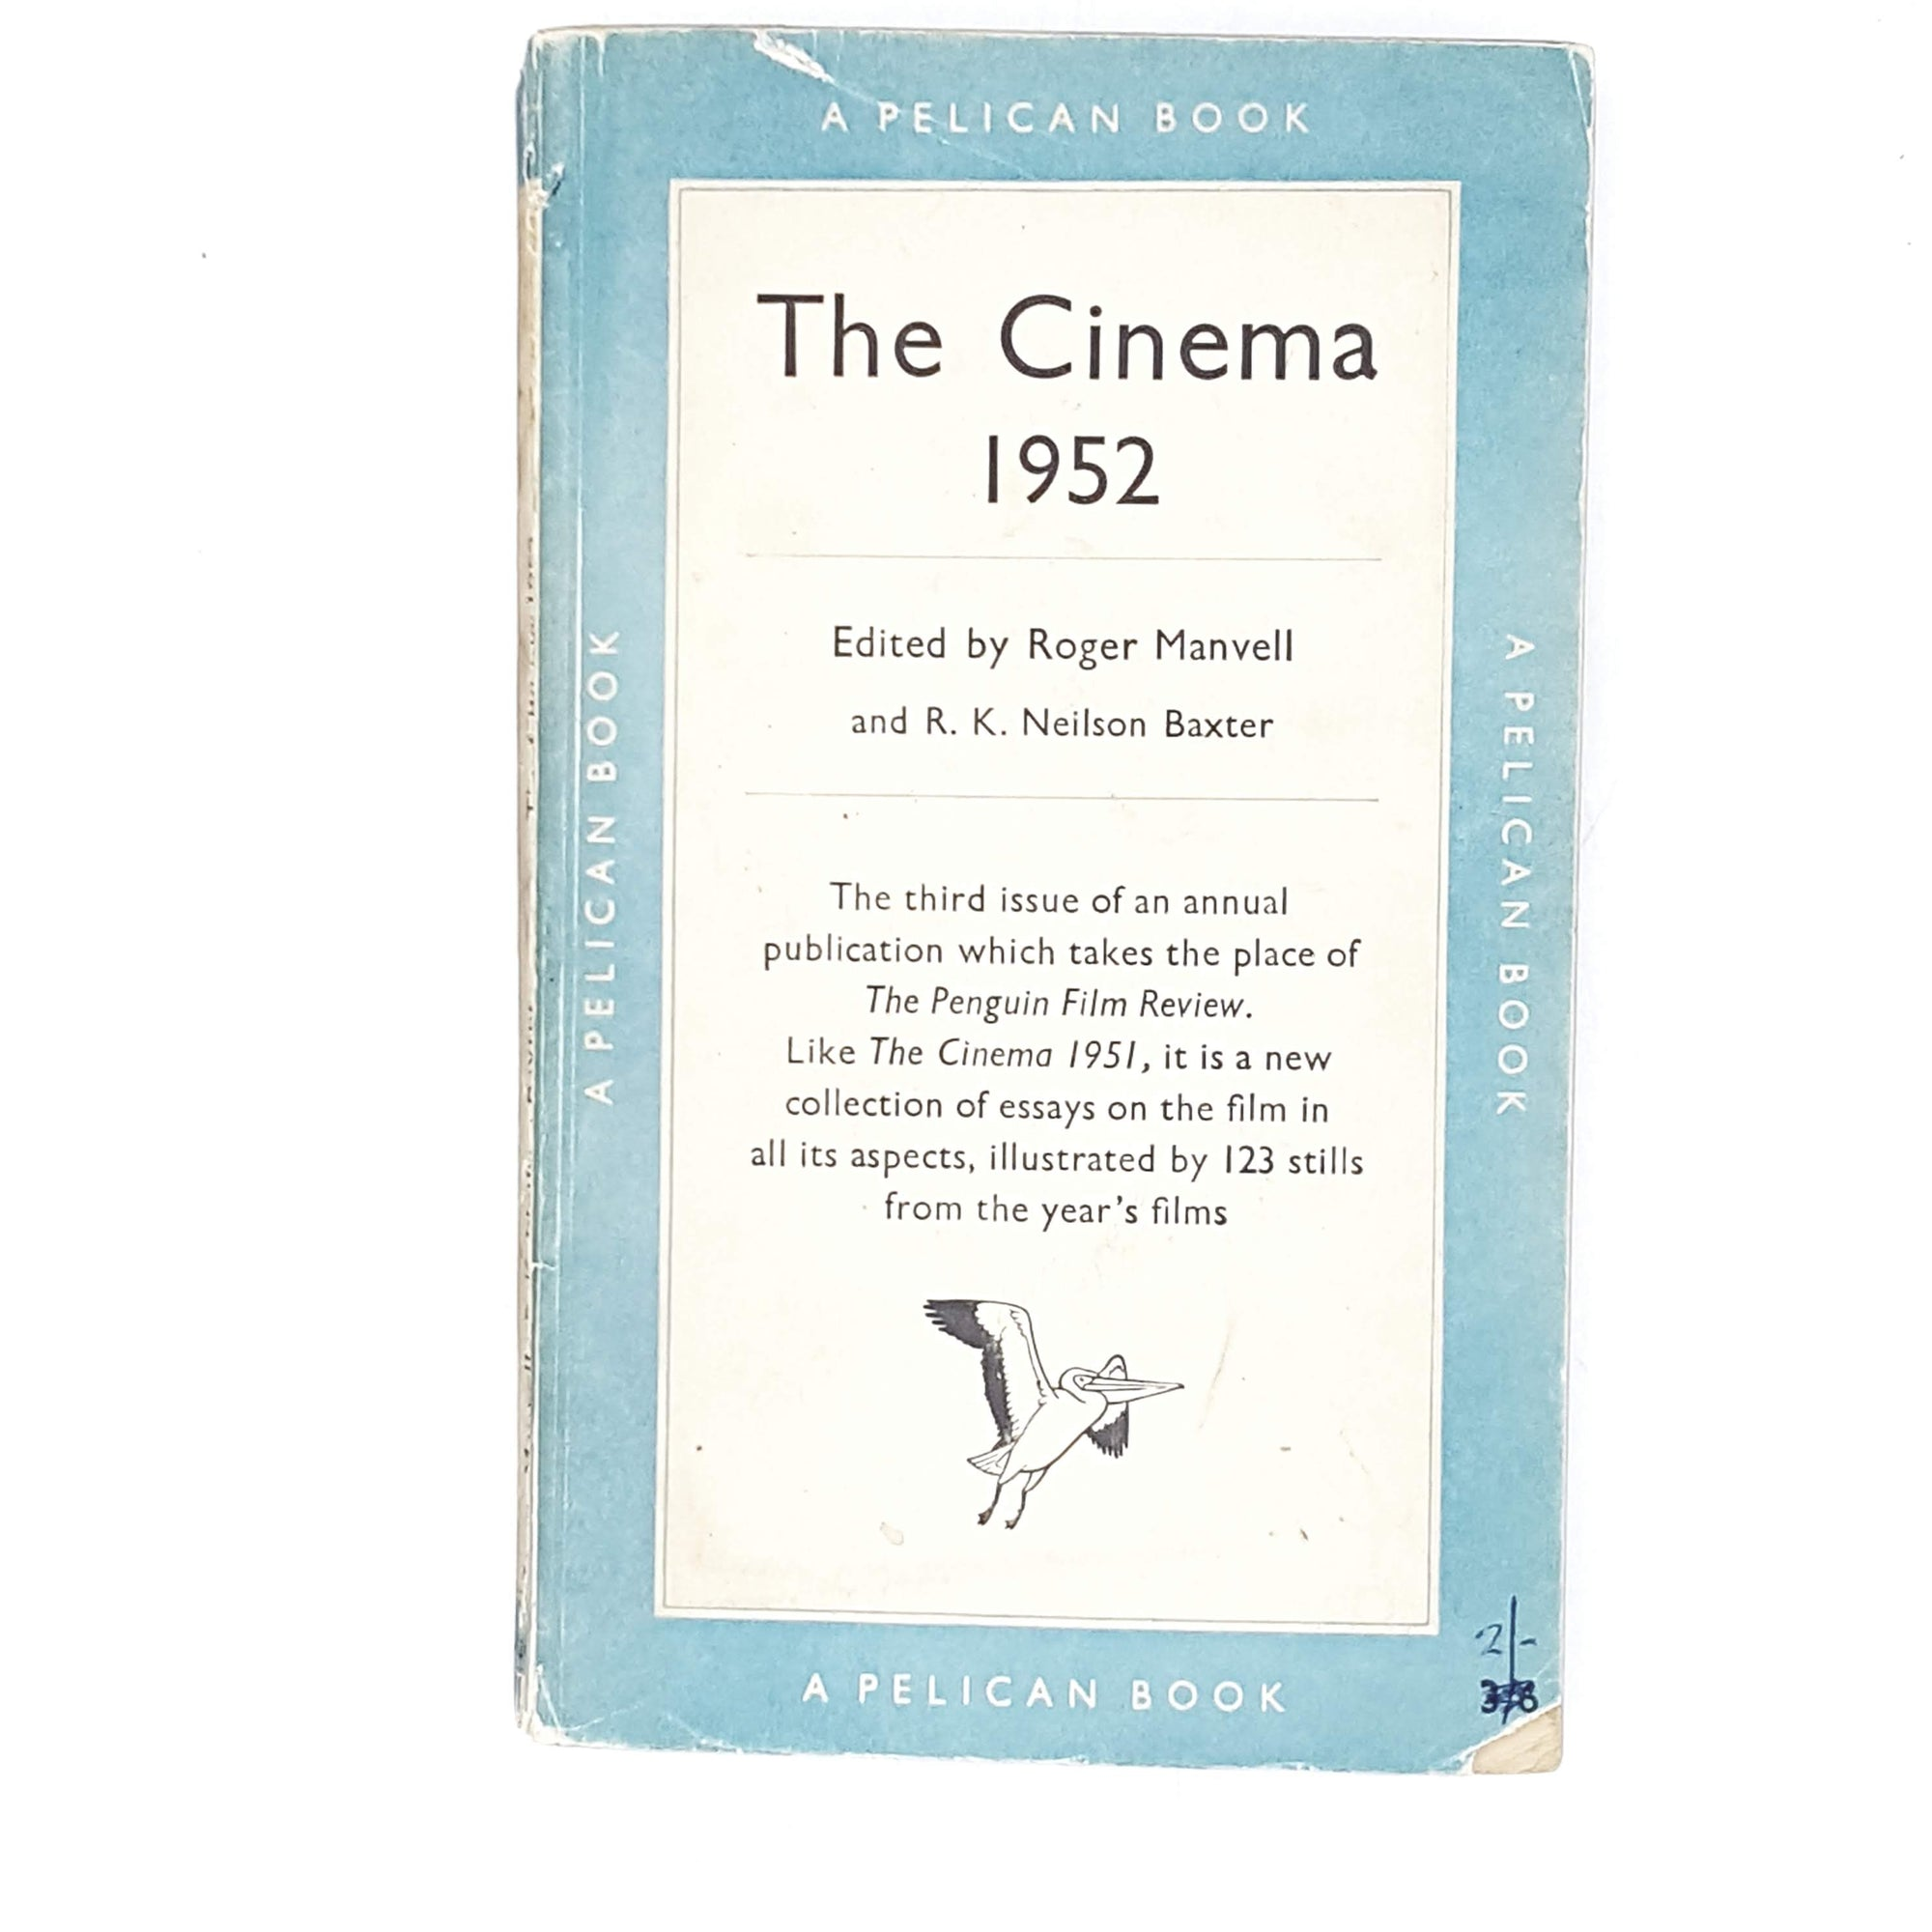 Vintage Pelican The Cinema by Roger Manvell and R. K. Neilson Baxter 1952